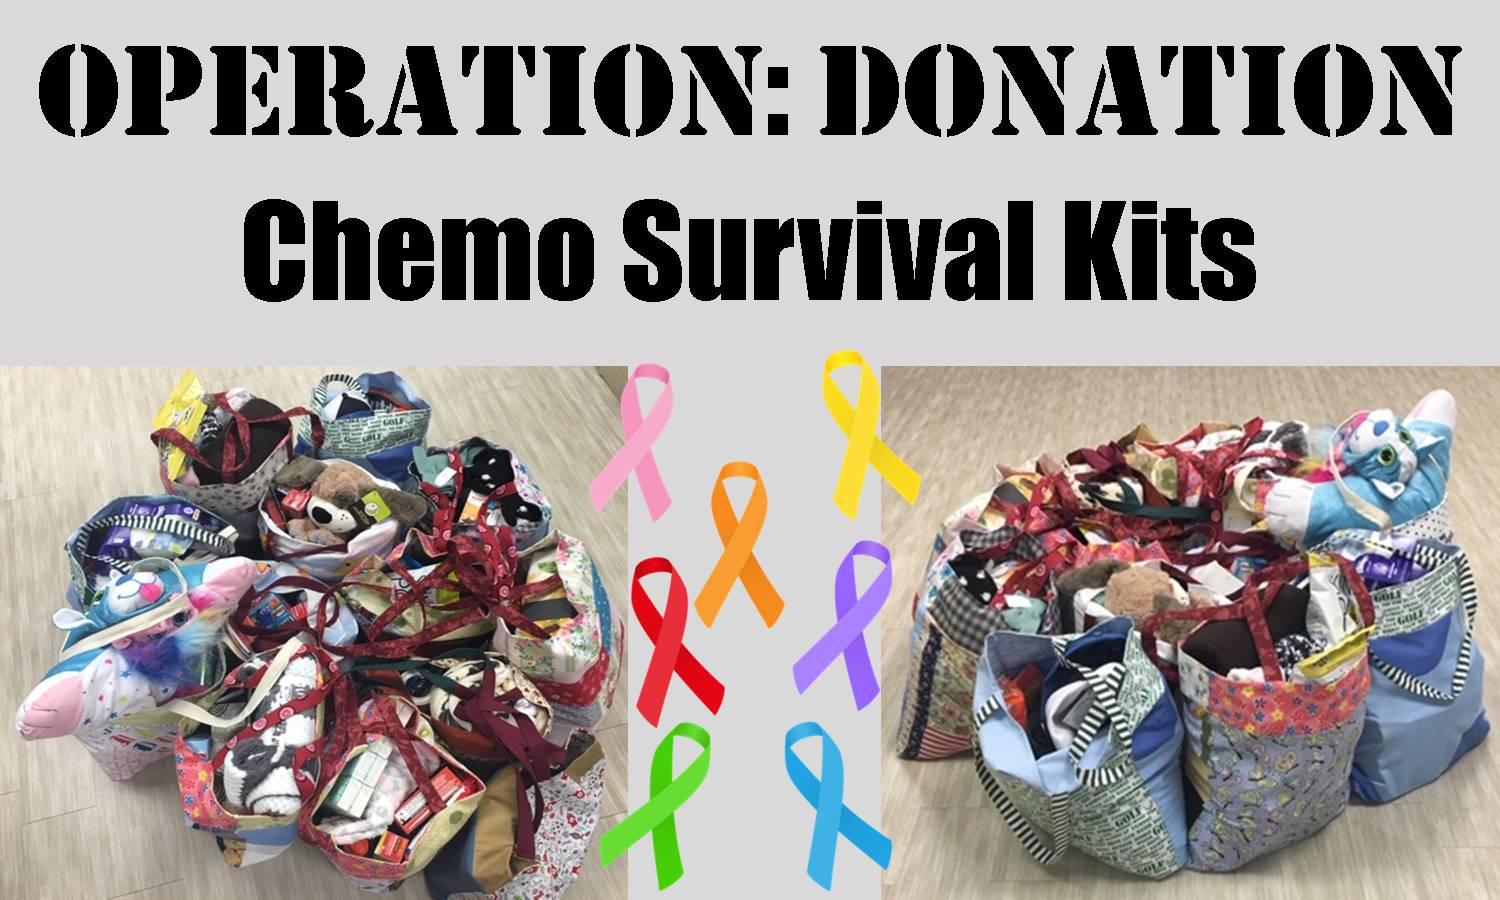 OPERATION DONATION CHEMO SURVIVAL KITS